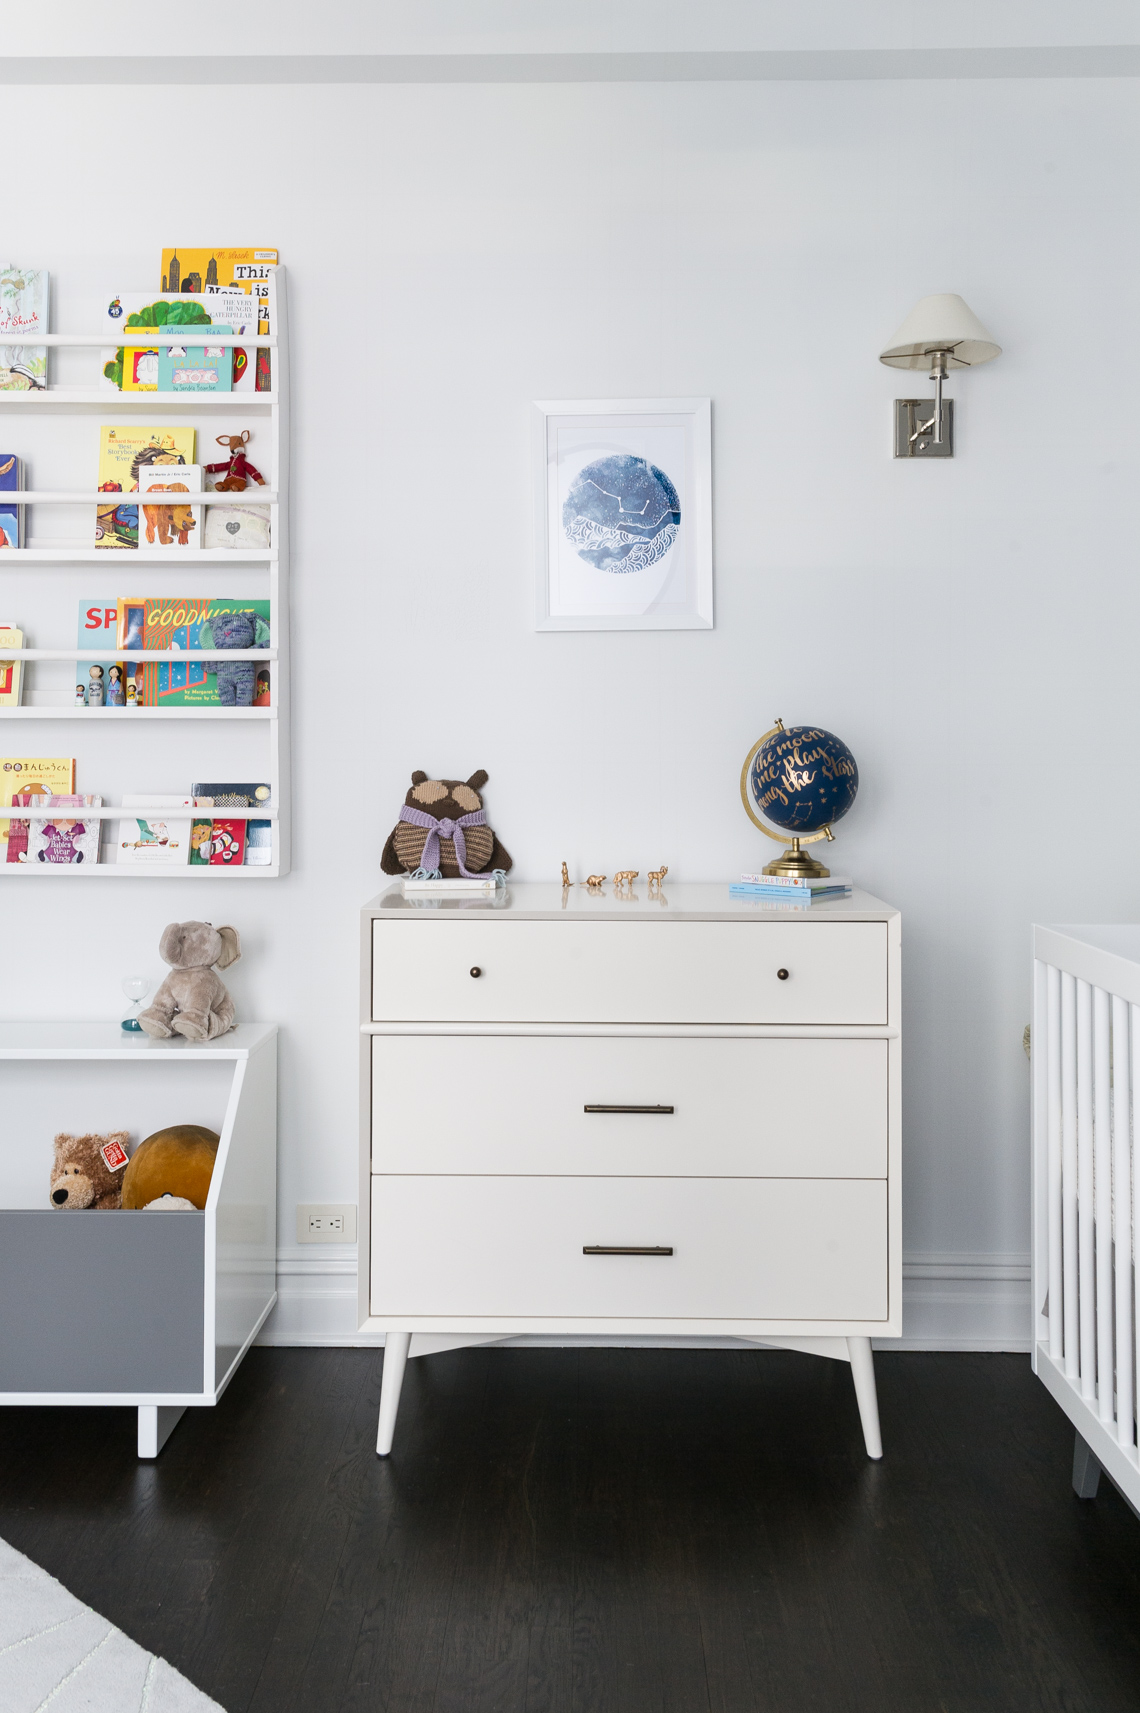 NYC Interior Photographer - Homepolish Interior Nursery